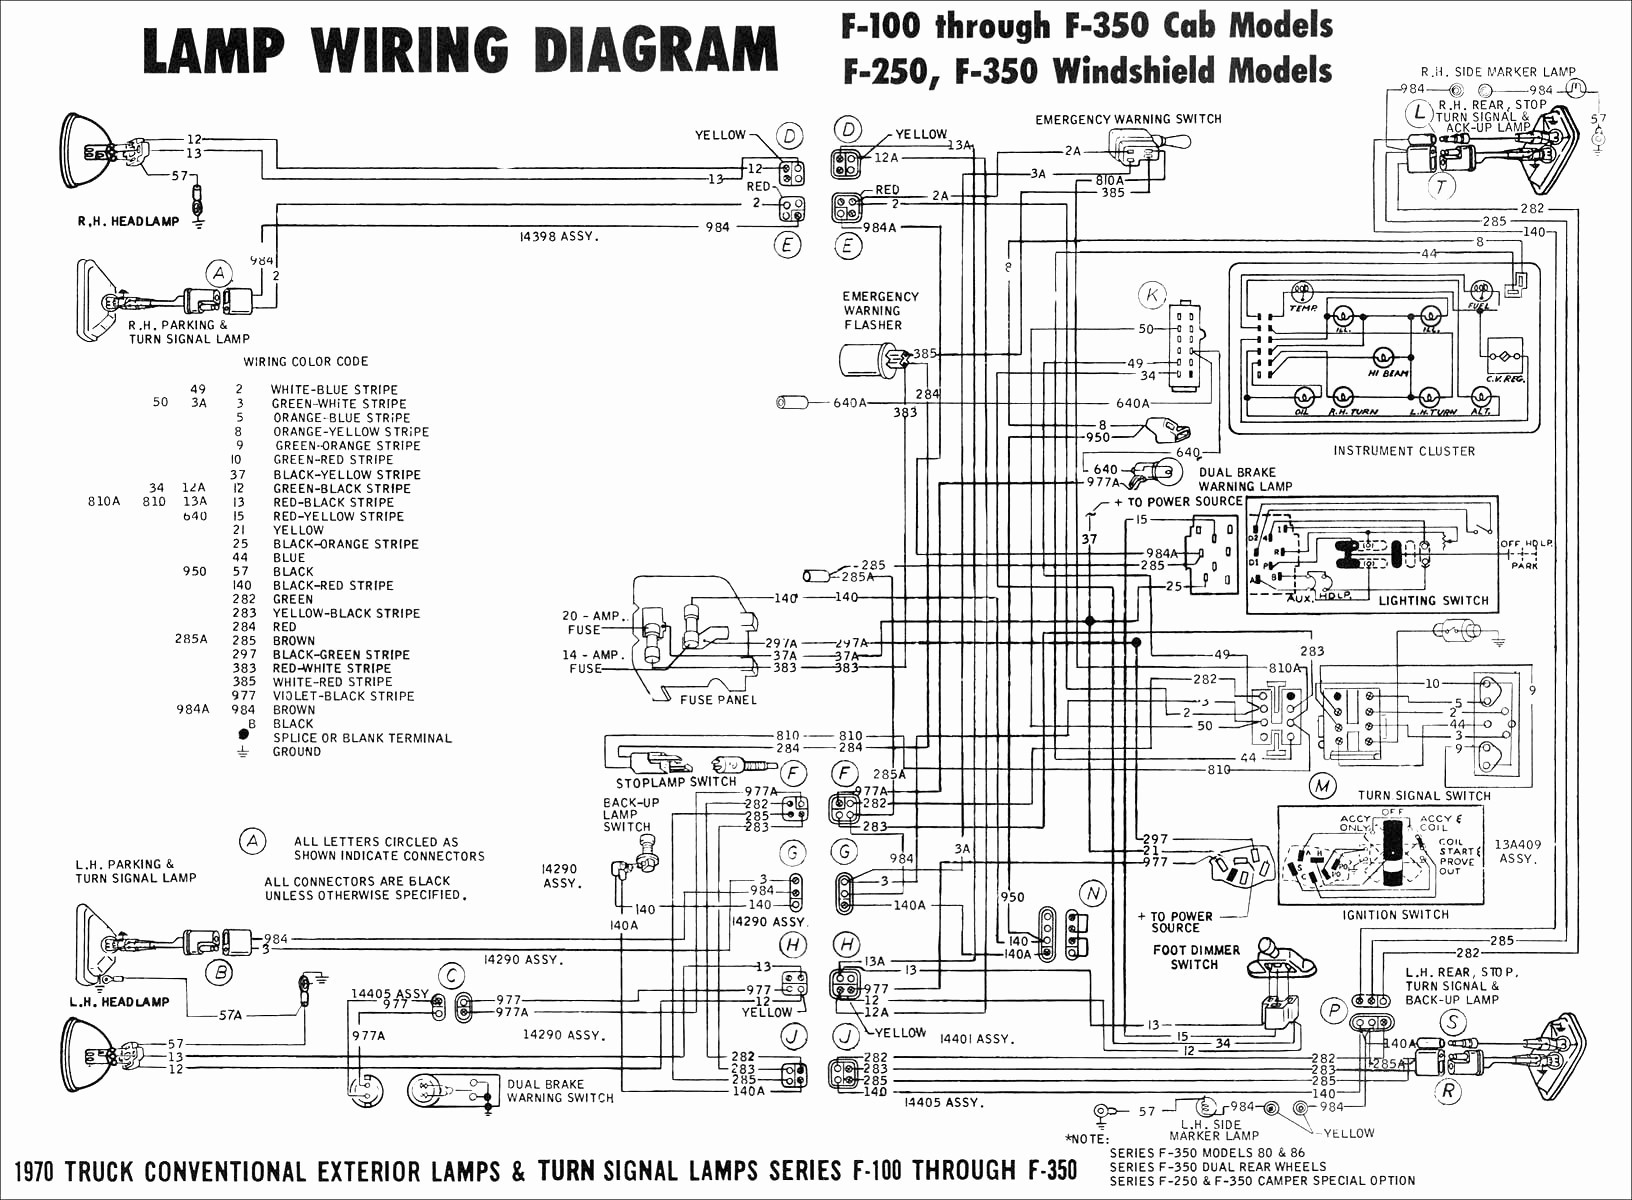 directv wiring diagram whole home dvr inspirational